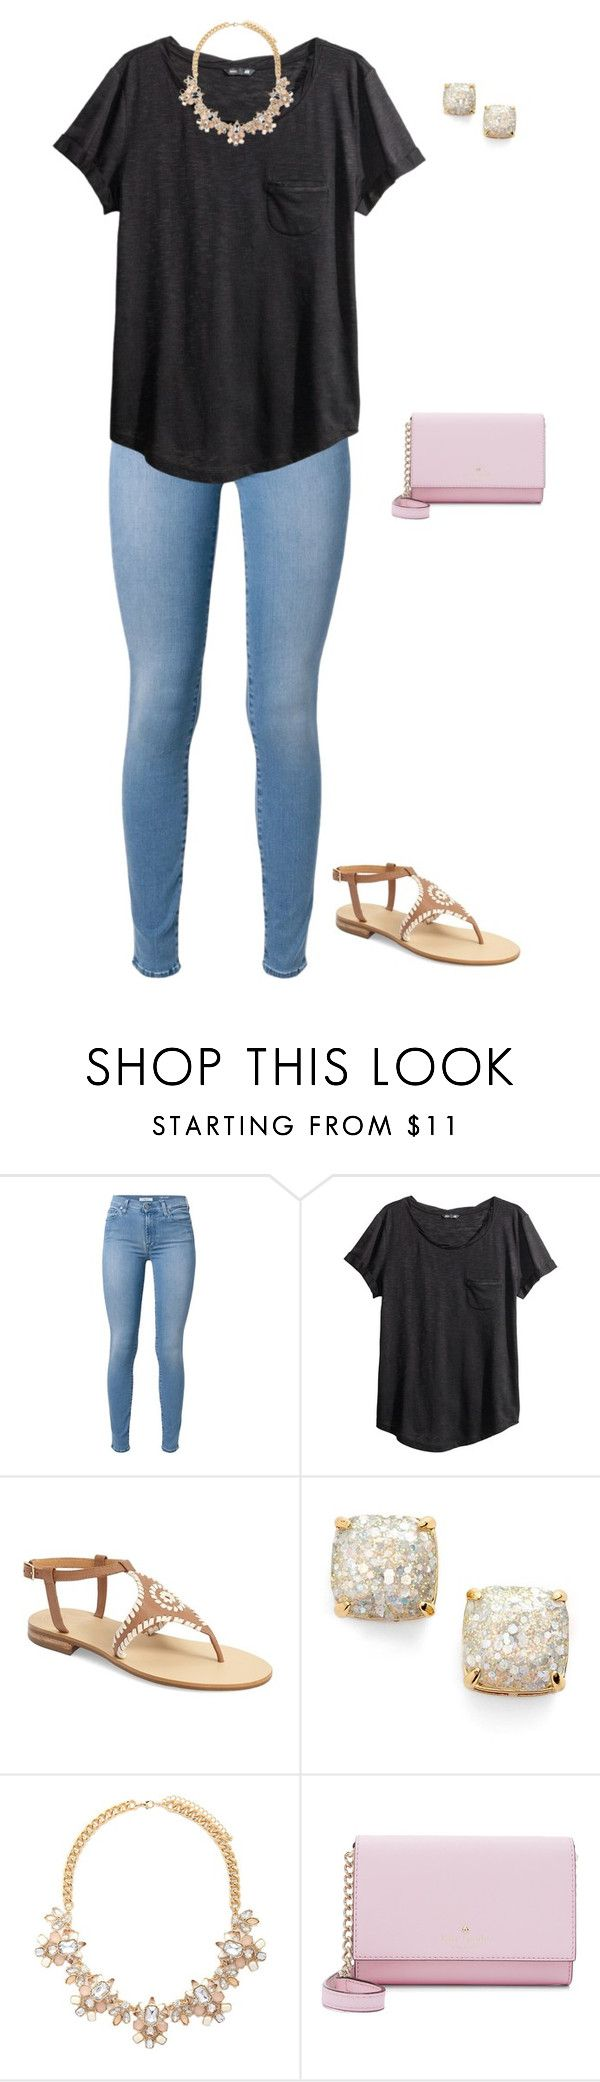 """Untitled #1117"" by jackelinhernandez ❤ liked on Polyvore featuring 7 For All Mankind, H&M, Jack Rogers, Kate Spade and Forever 21"